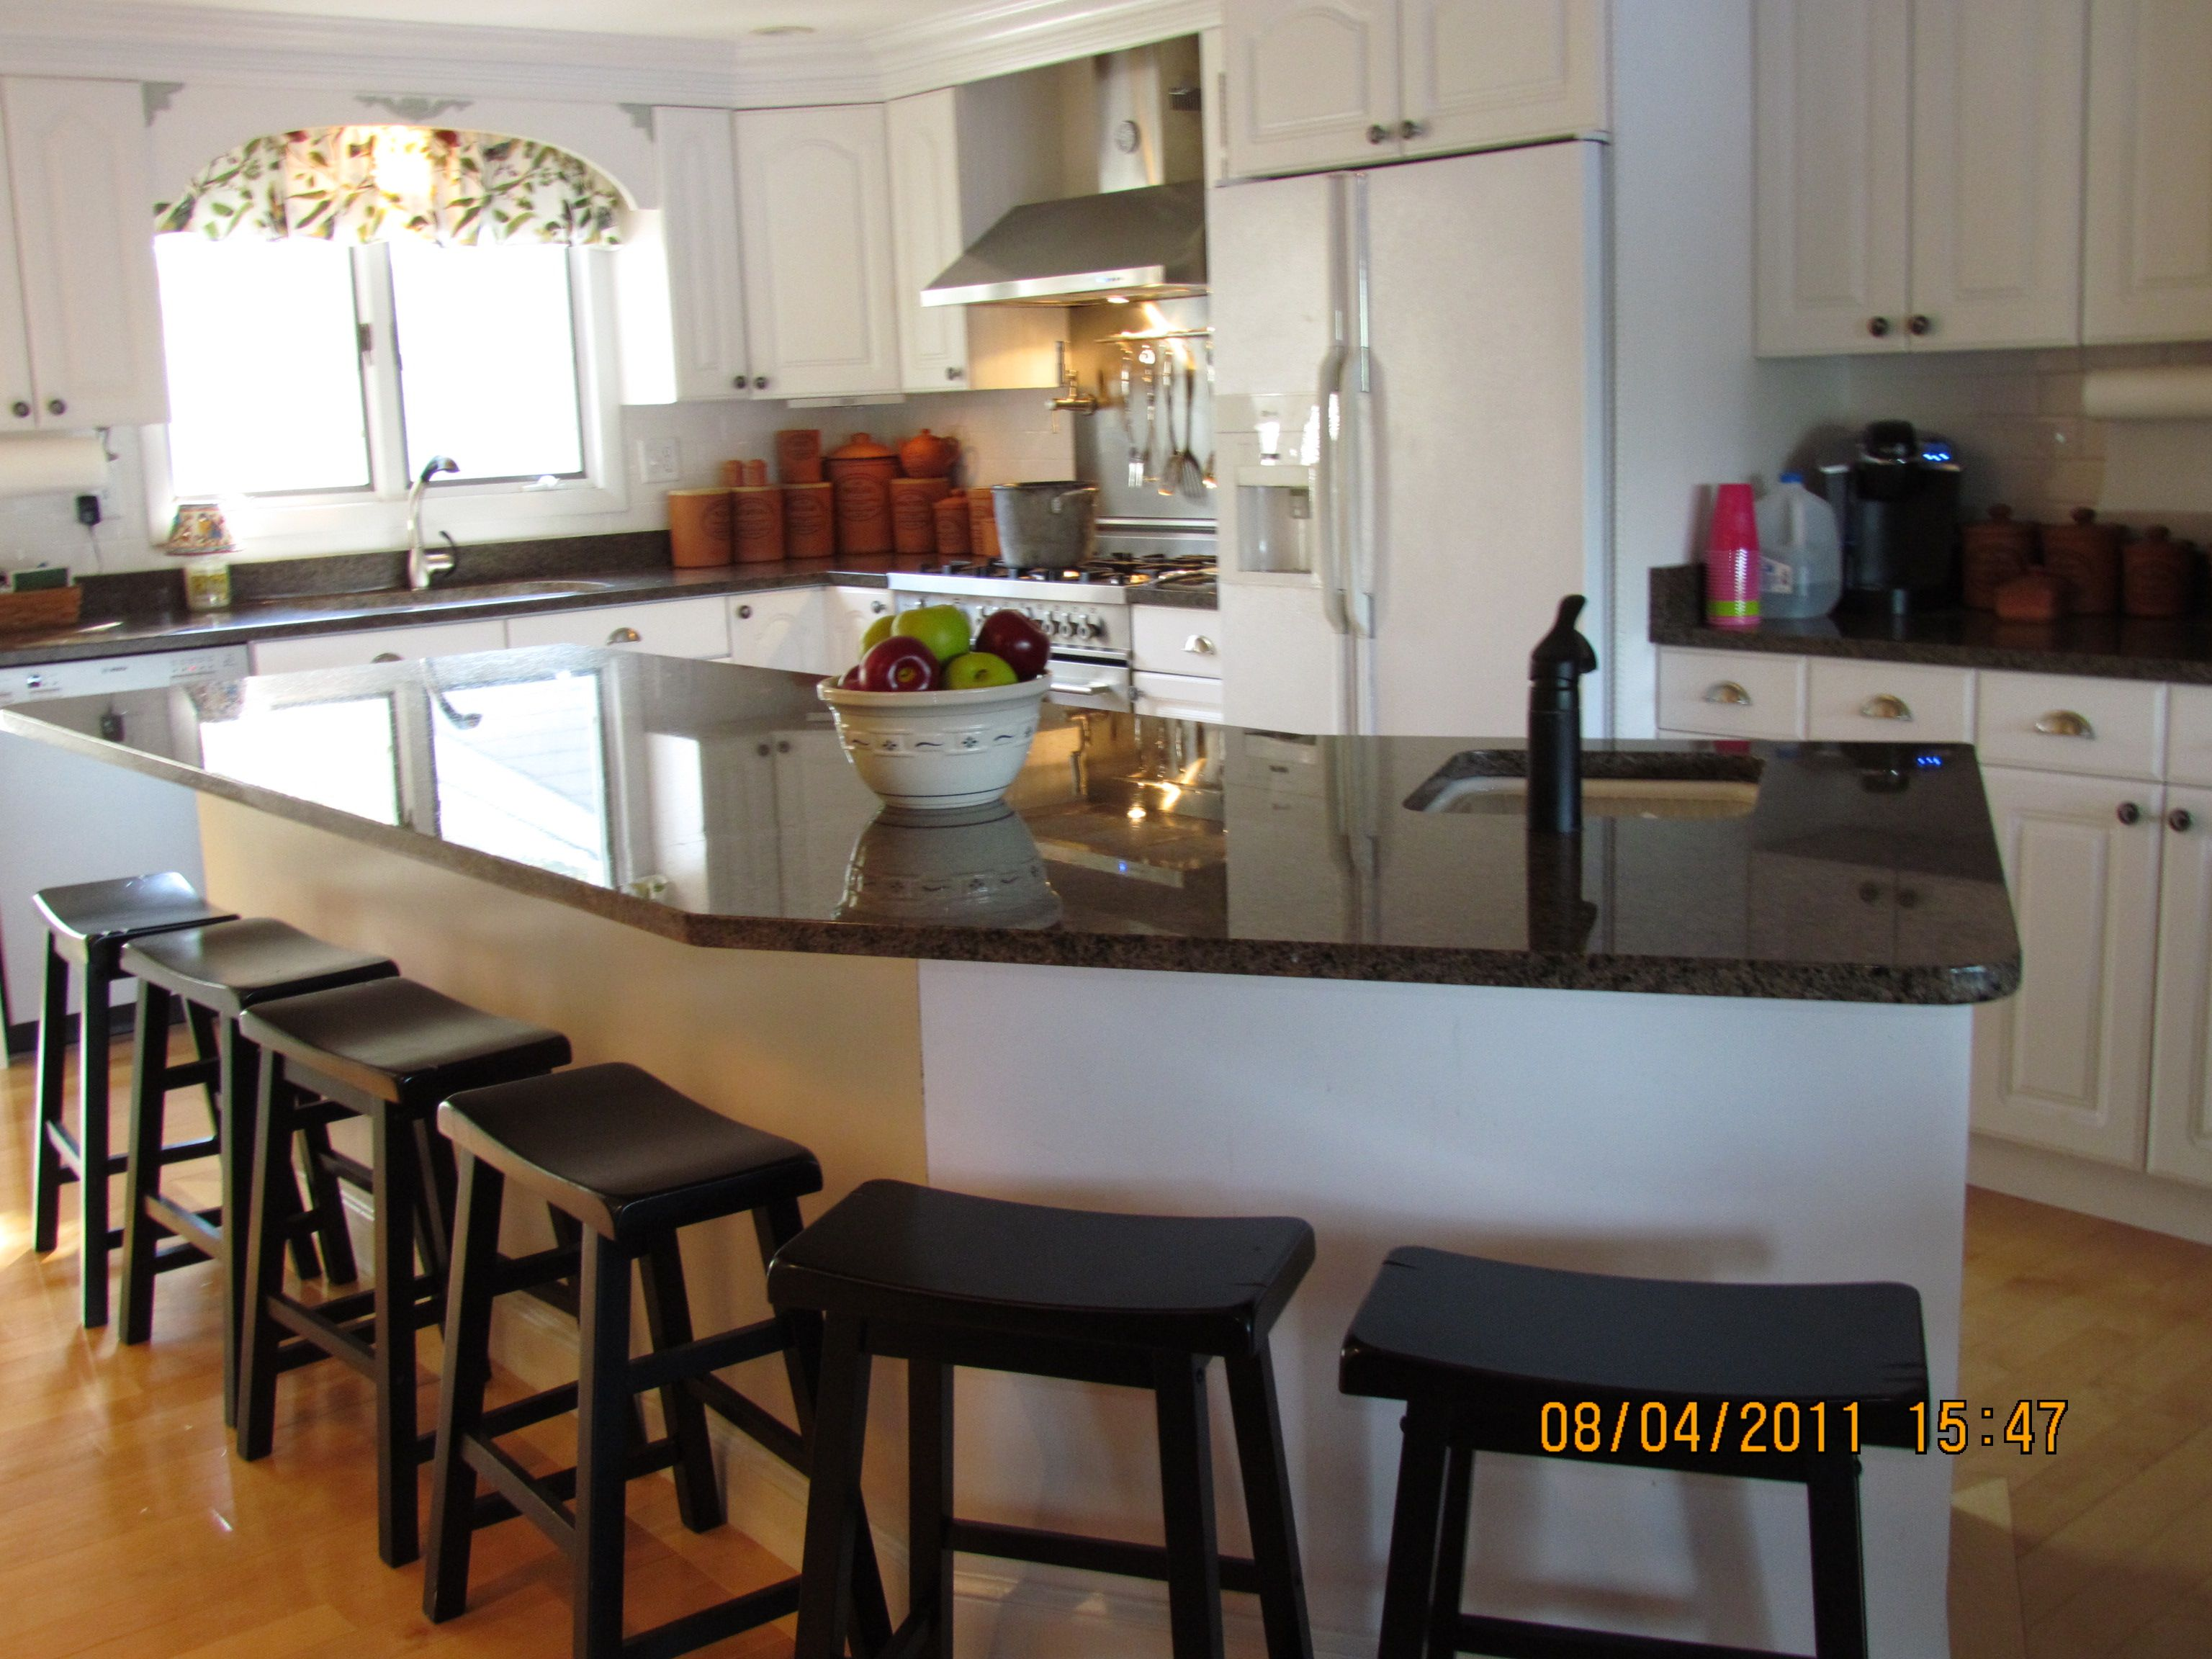 Kitchen Island With Prep Sink Countertop Large Granite In Cottage